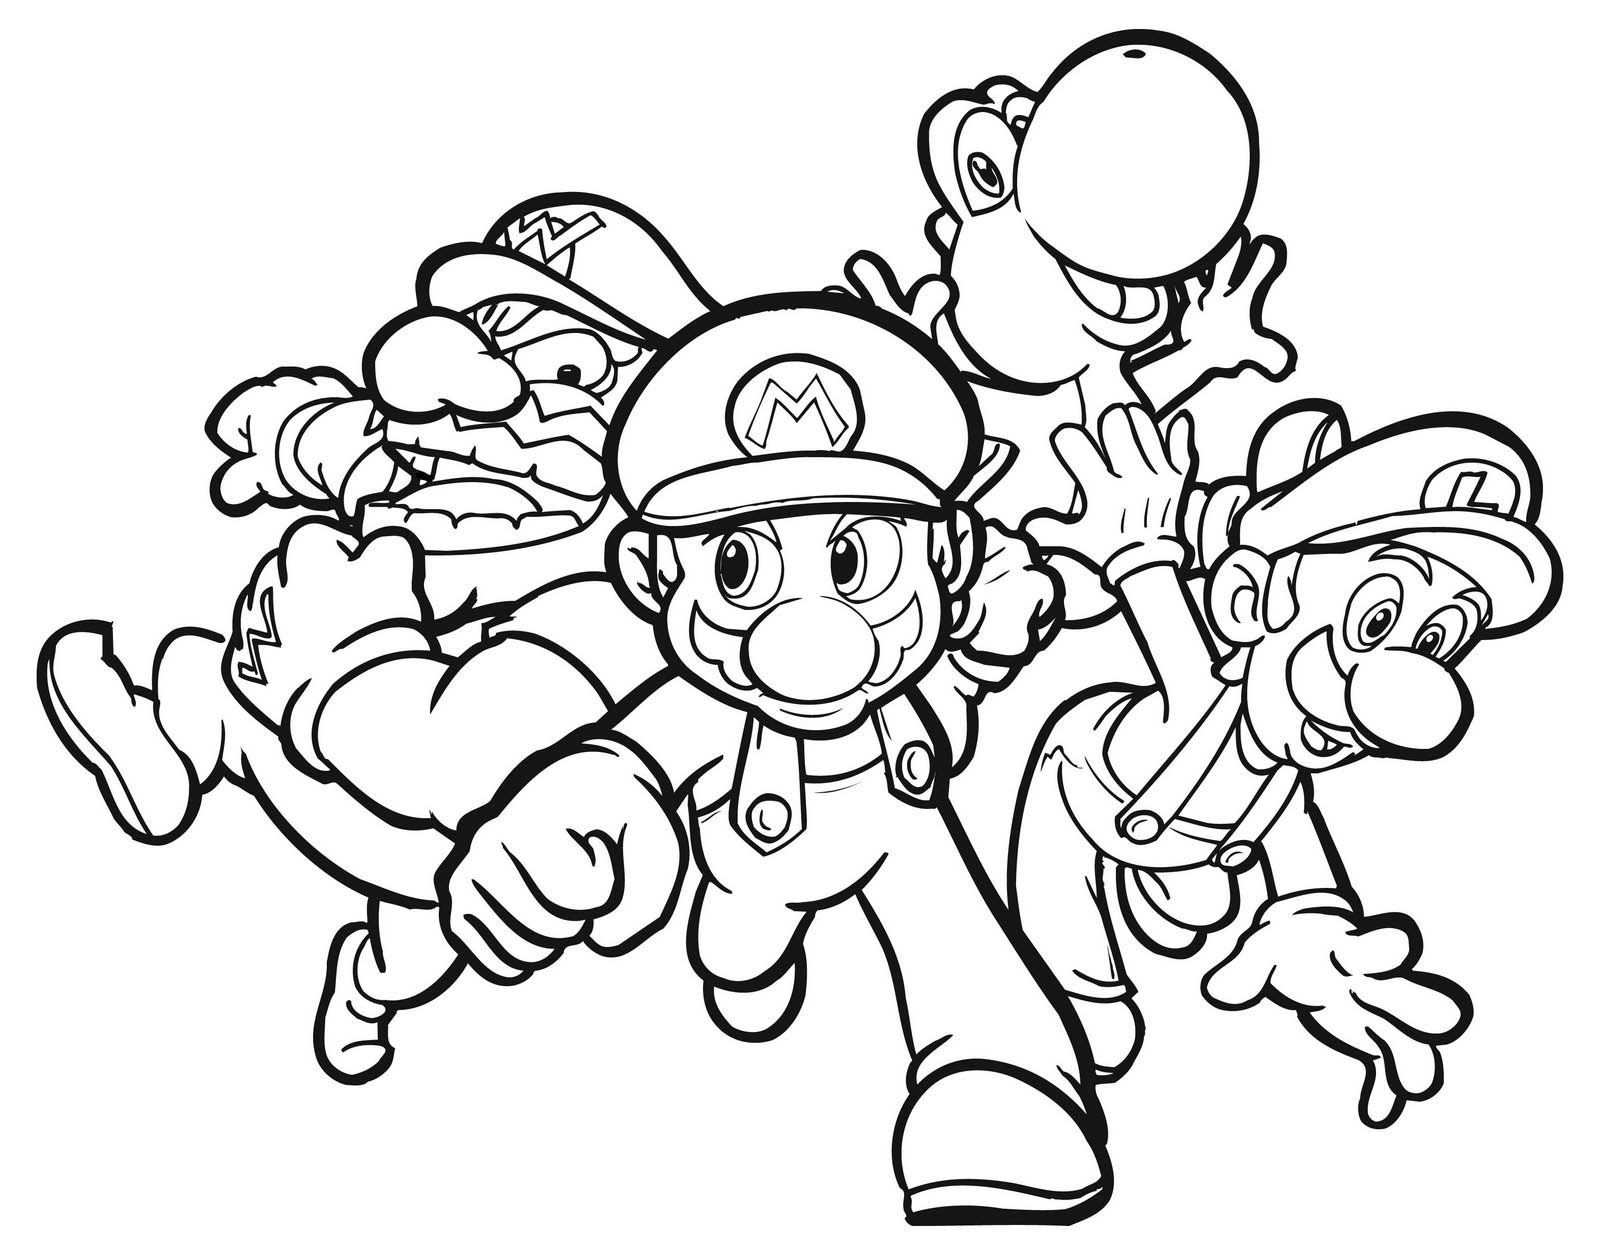 Free Printable Mario Coloring Pages For Kids Abstracte